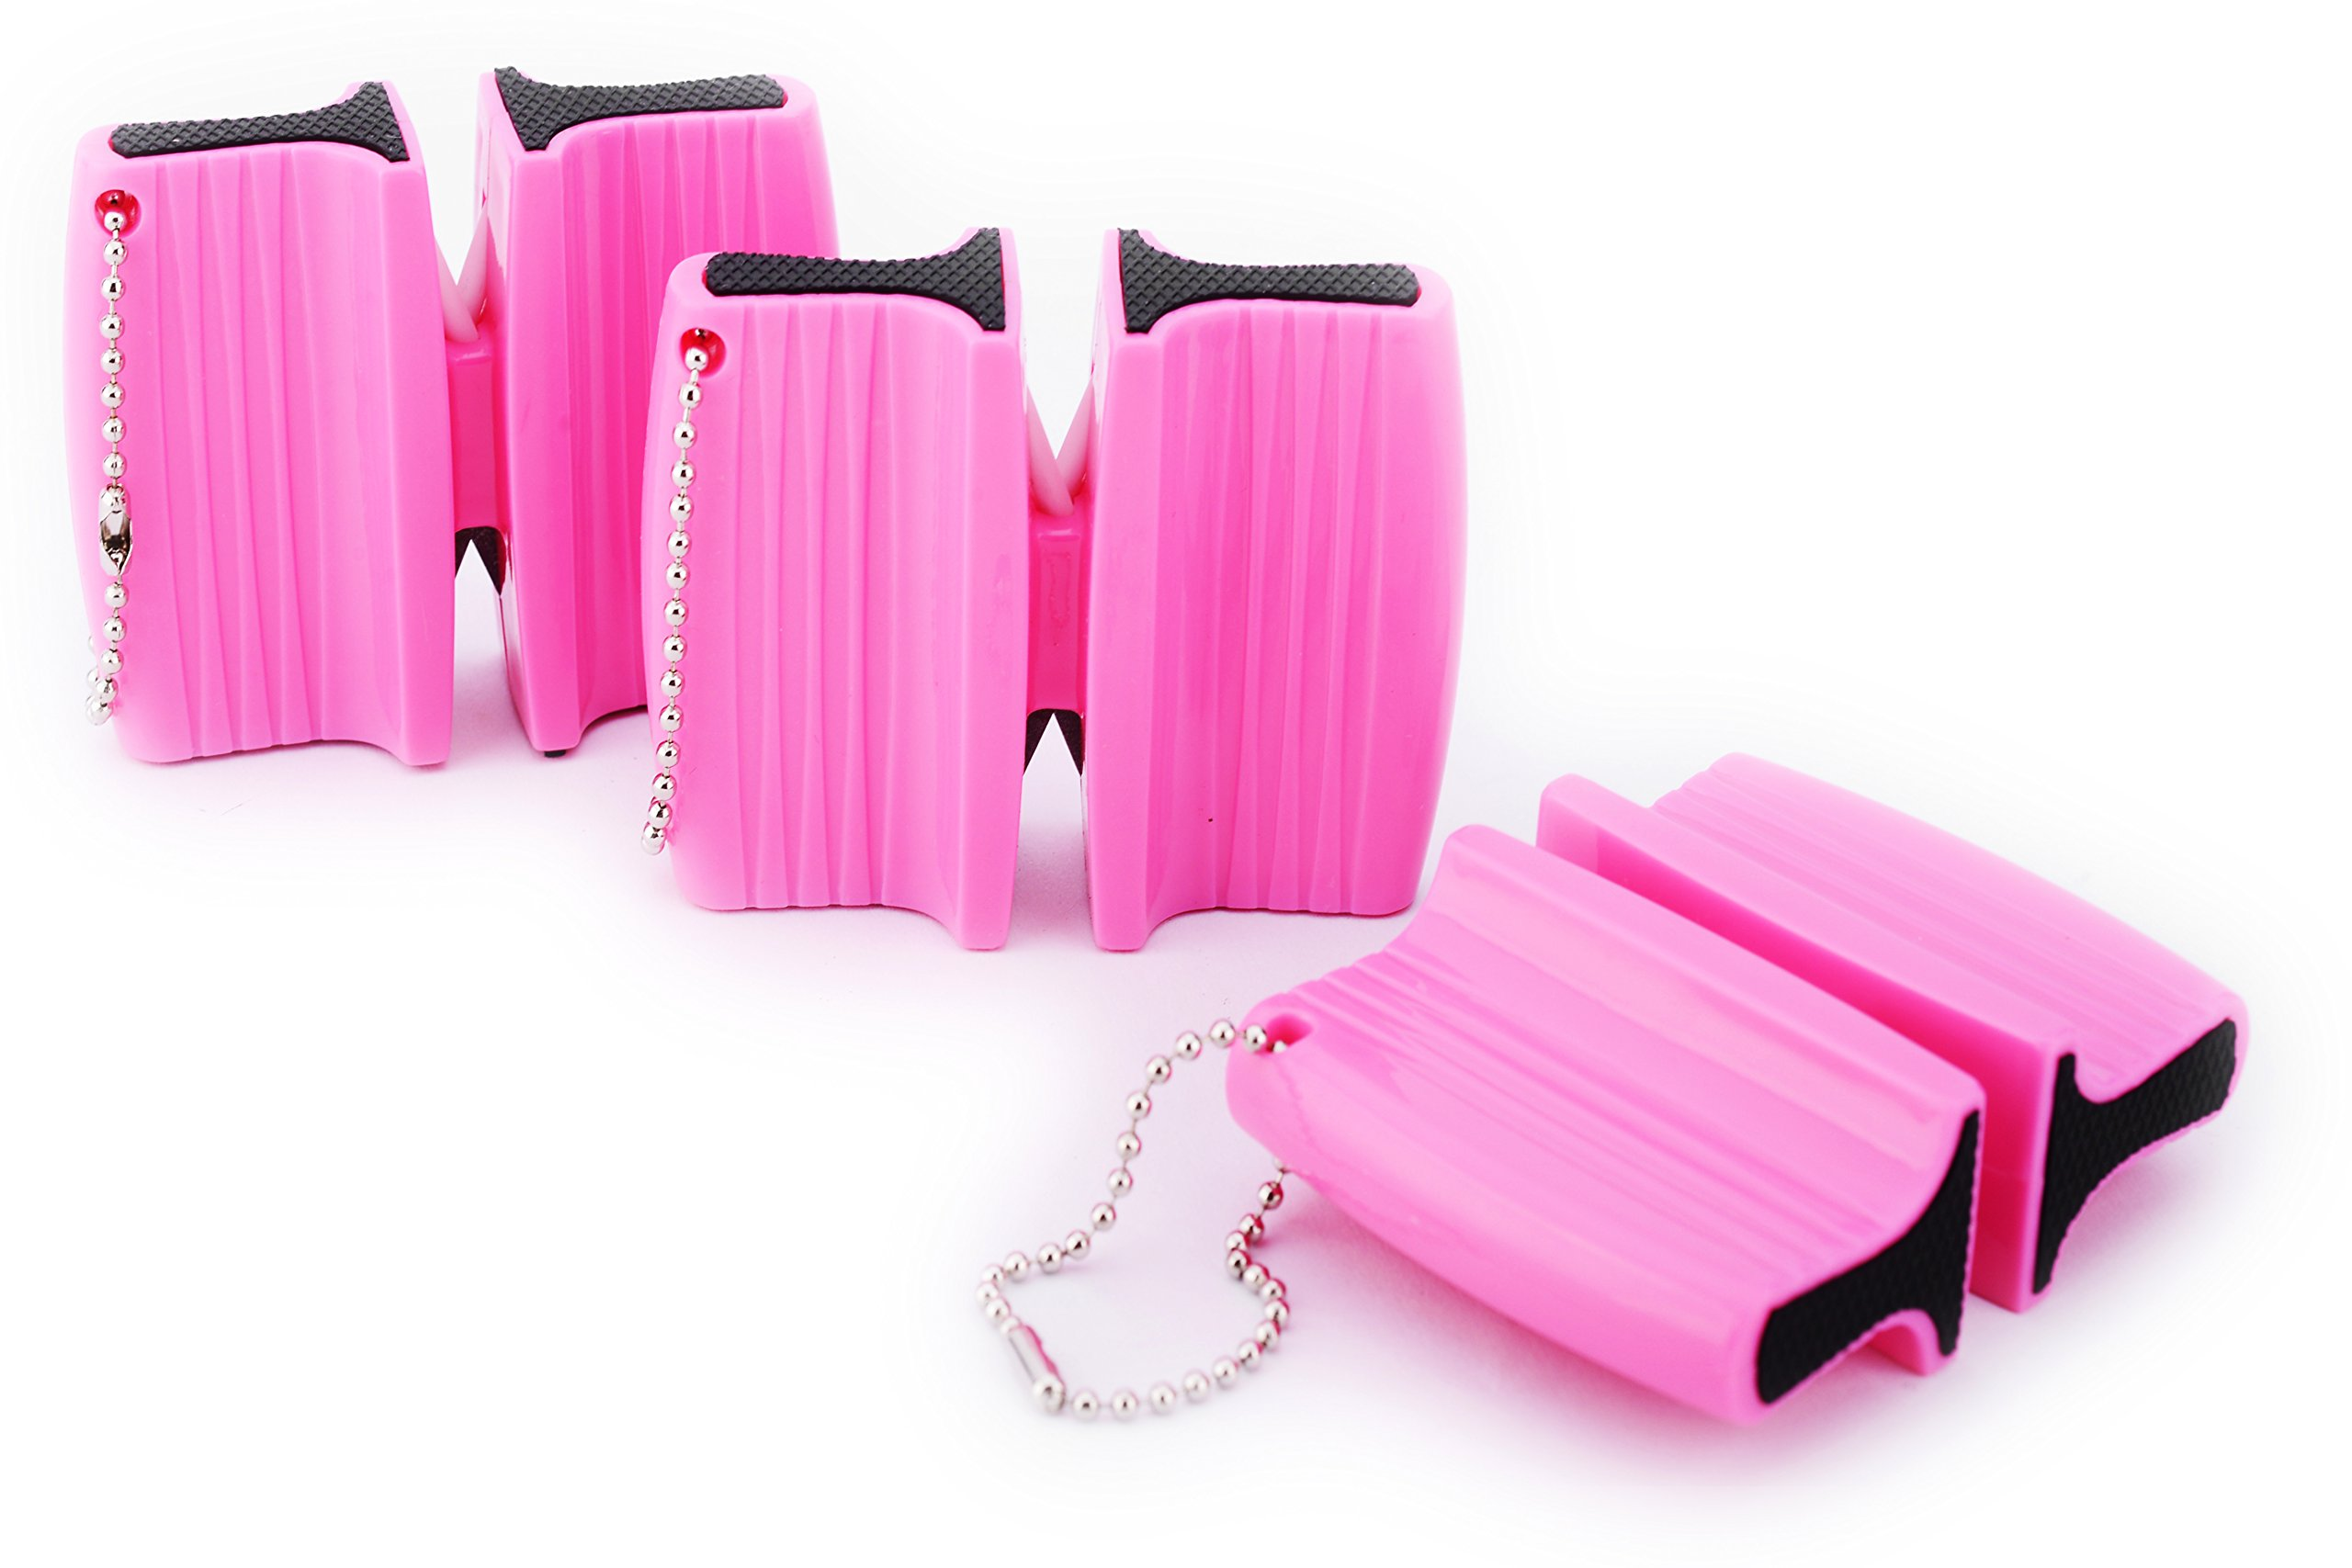 Waypower Knife Sharpeners, Pink Fine And Coarse Dual Mini,practical Handle by Waypower